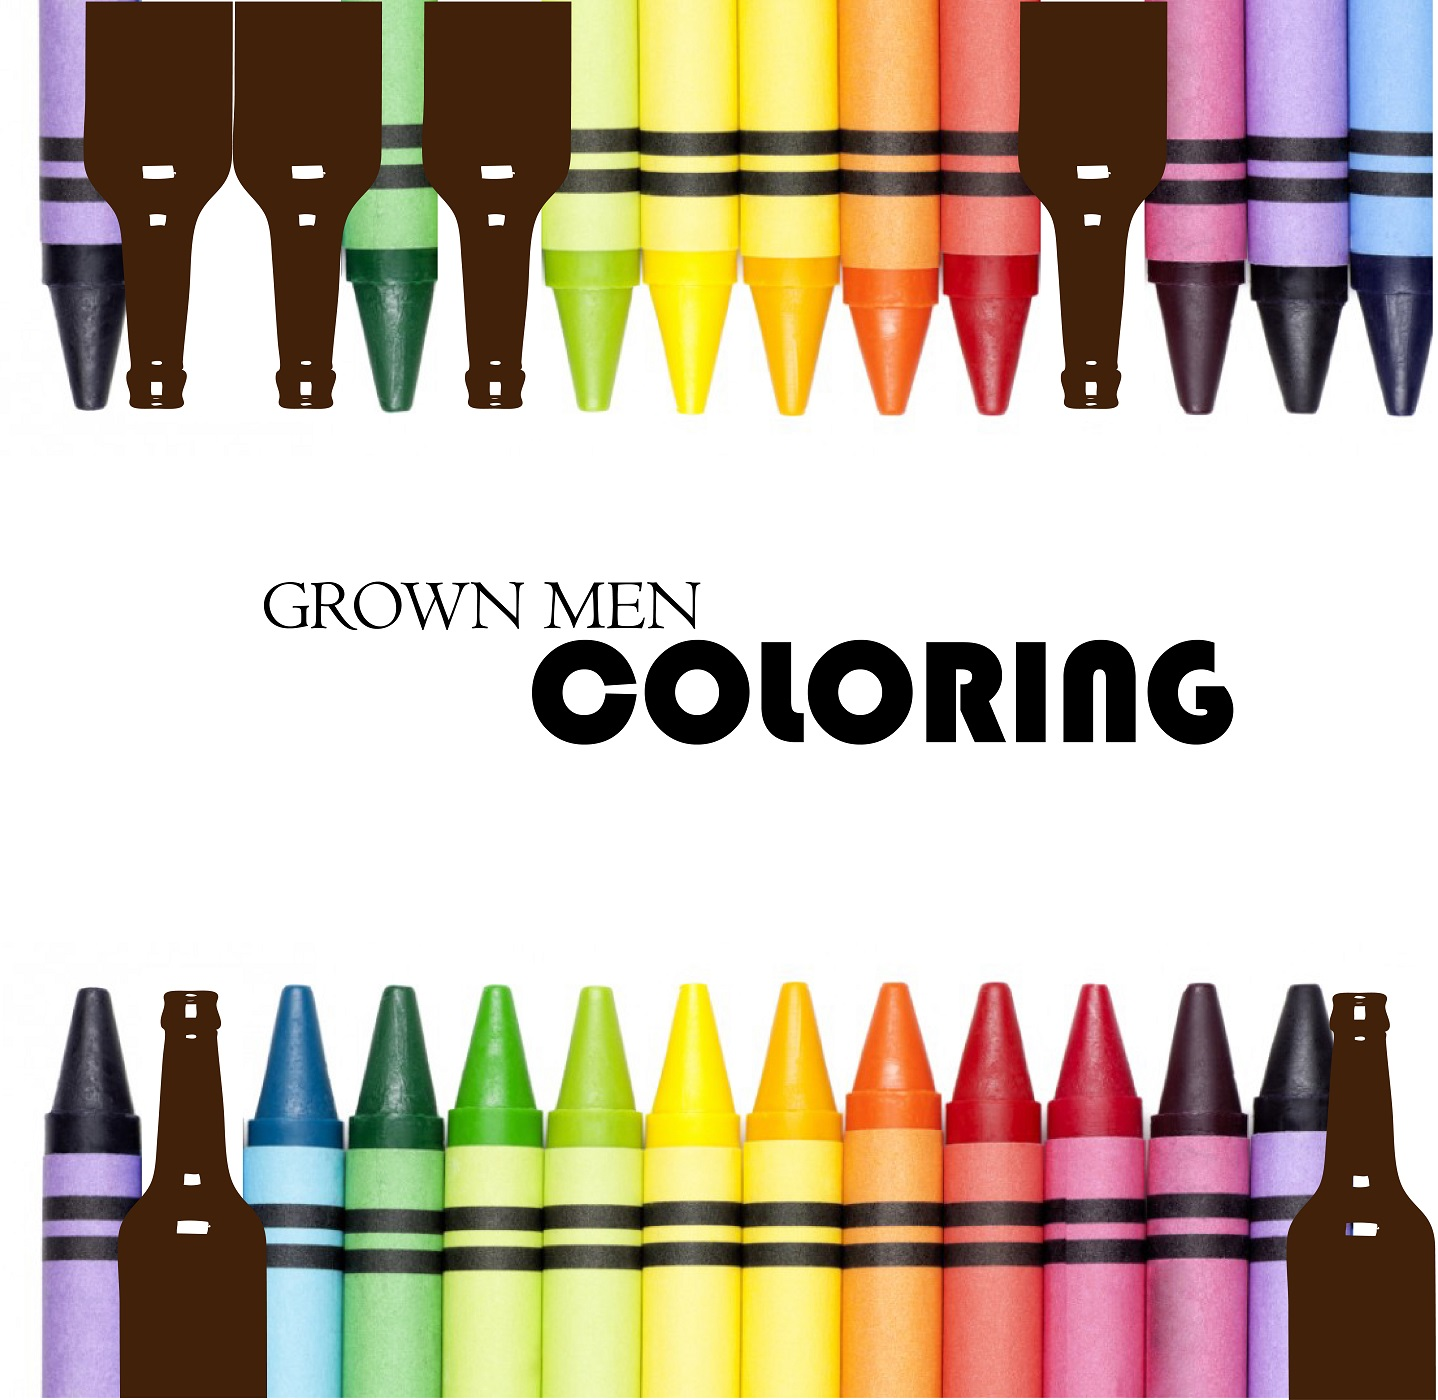 Grown Men Colouring